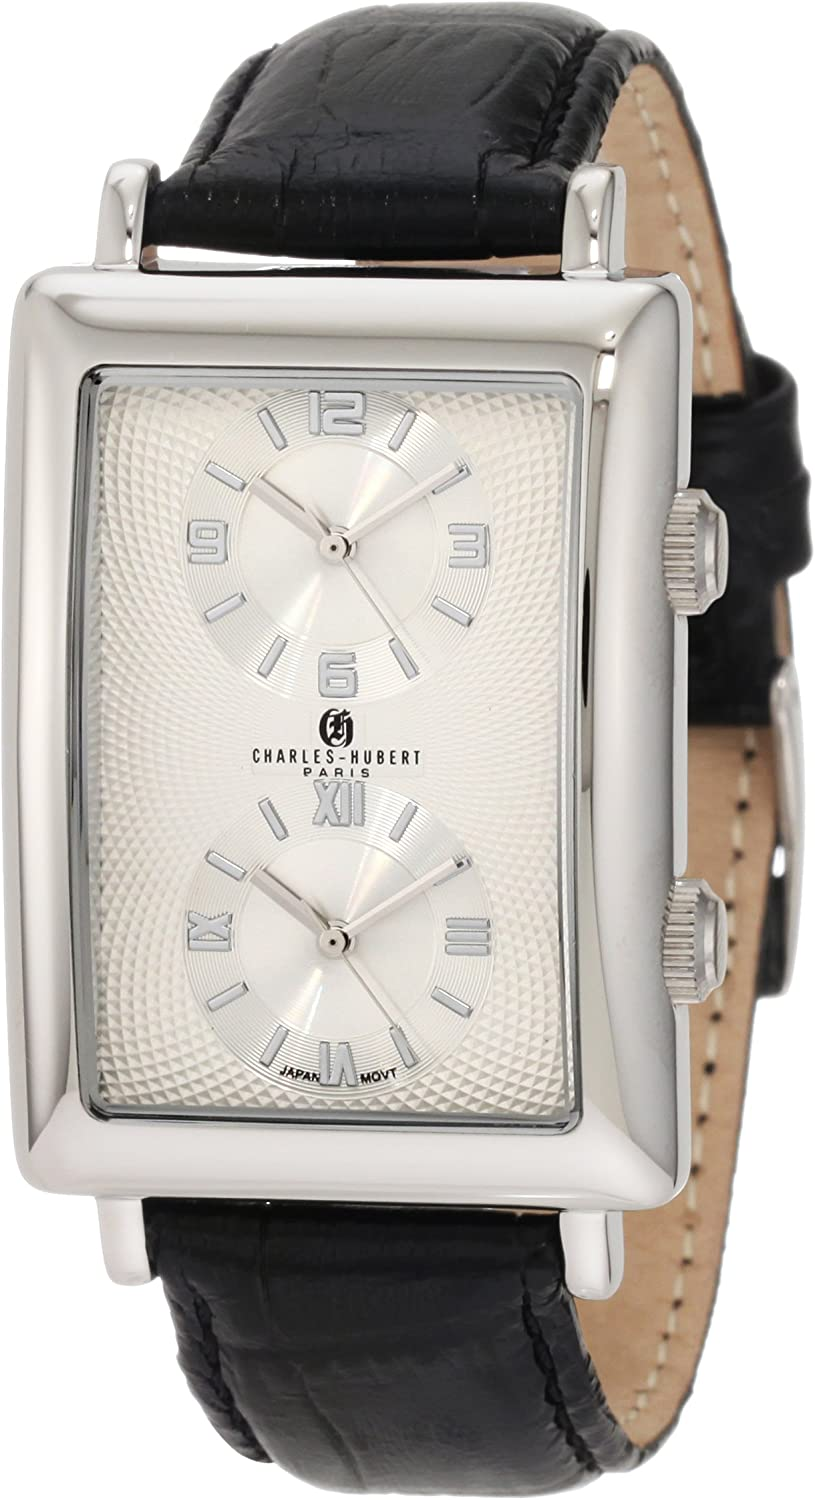 Charles-Hubert, Paris Men s 3854-W Premium Collection Stainless Steel Dual-Time Watch